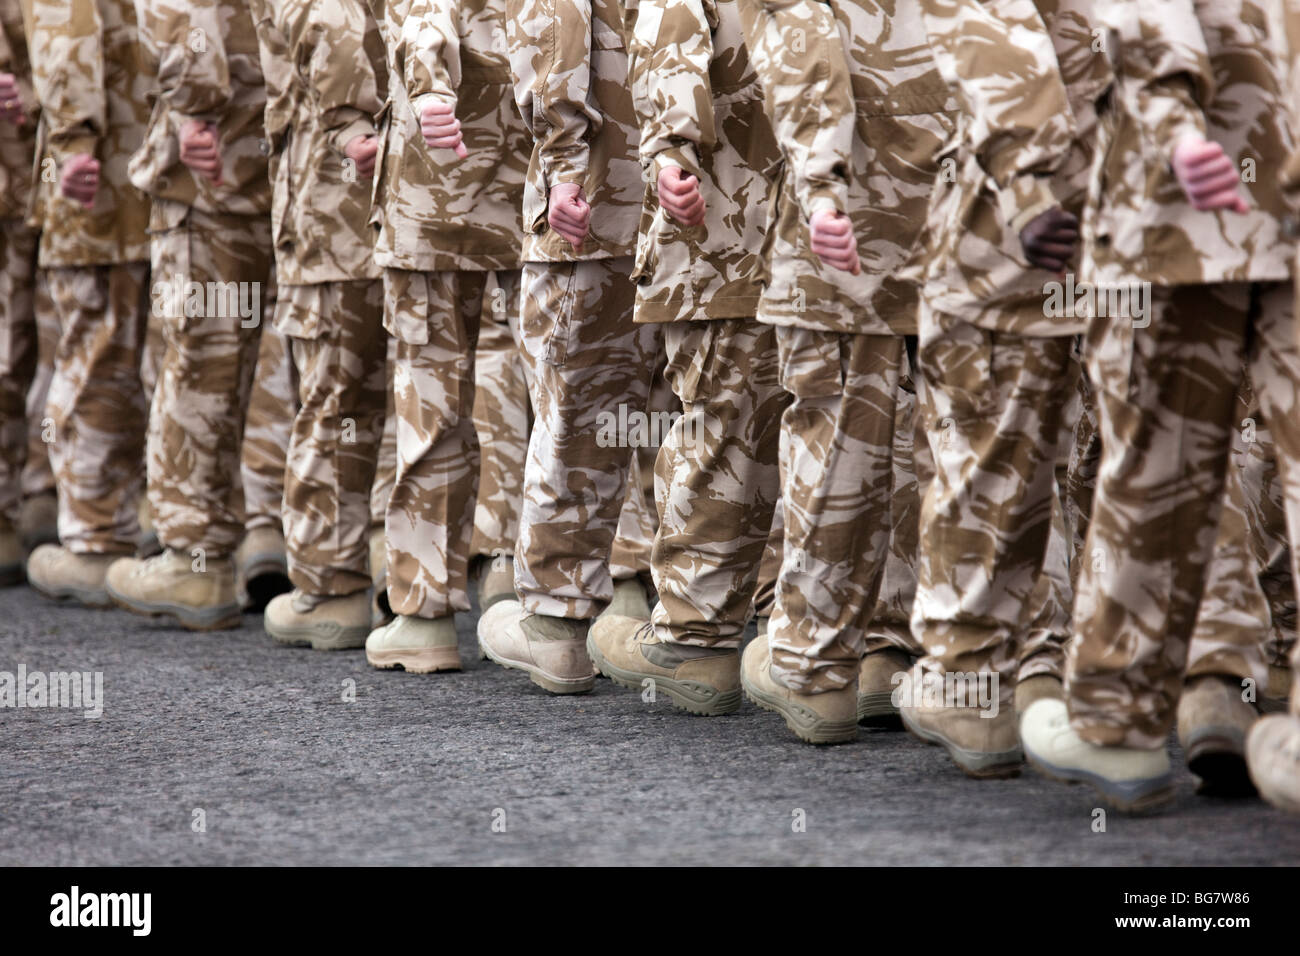 British soldiers from the 4th Battalion The Rifles in desert uniform on the parade ground at Bulford Camp, Wiltshire, - Stock Image